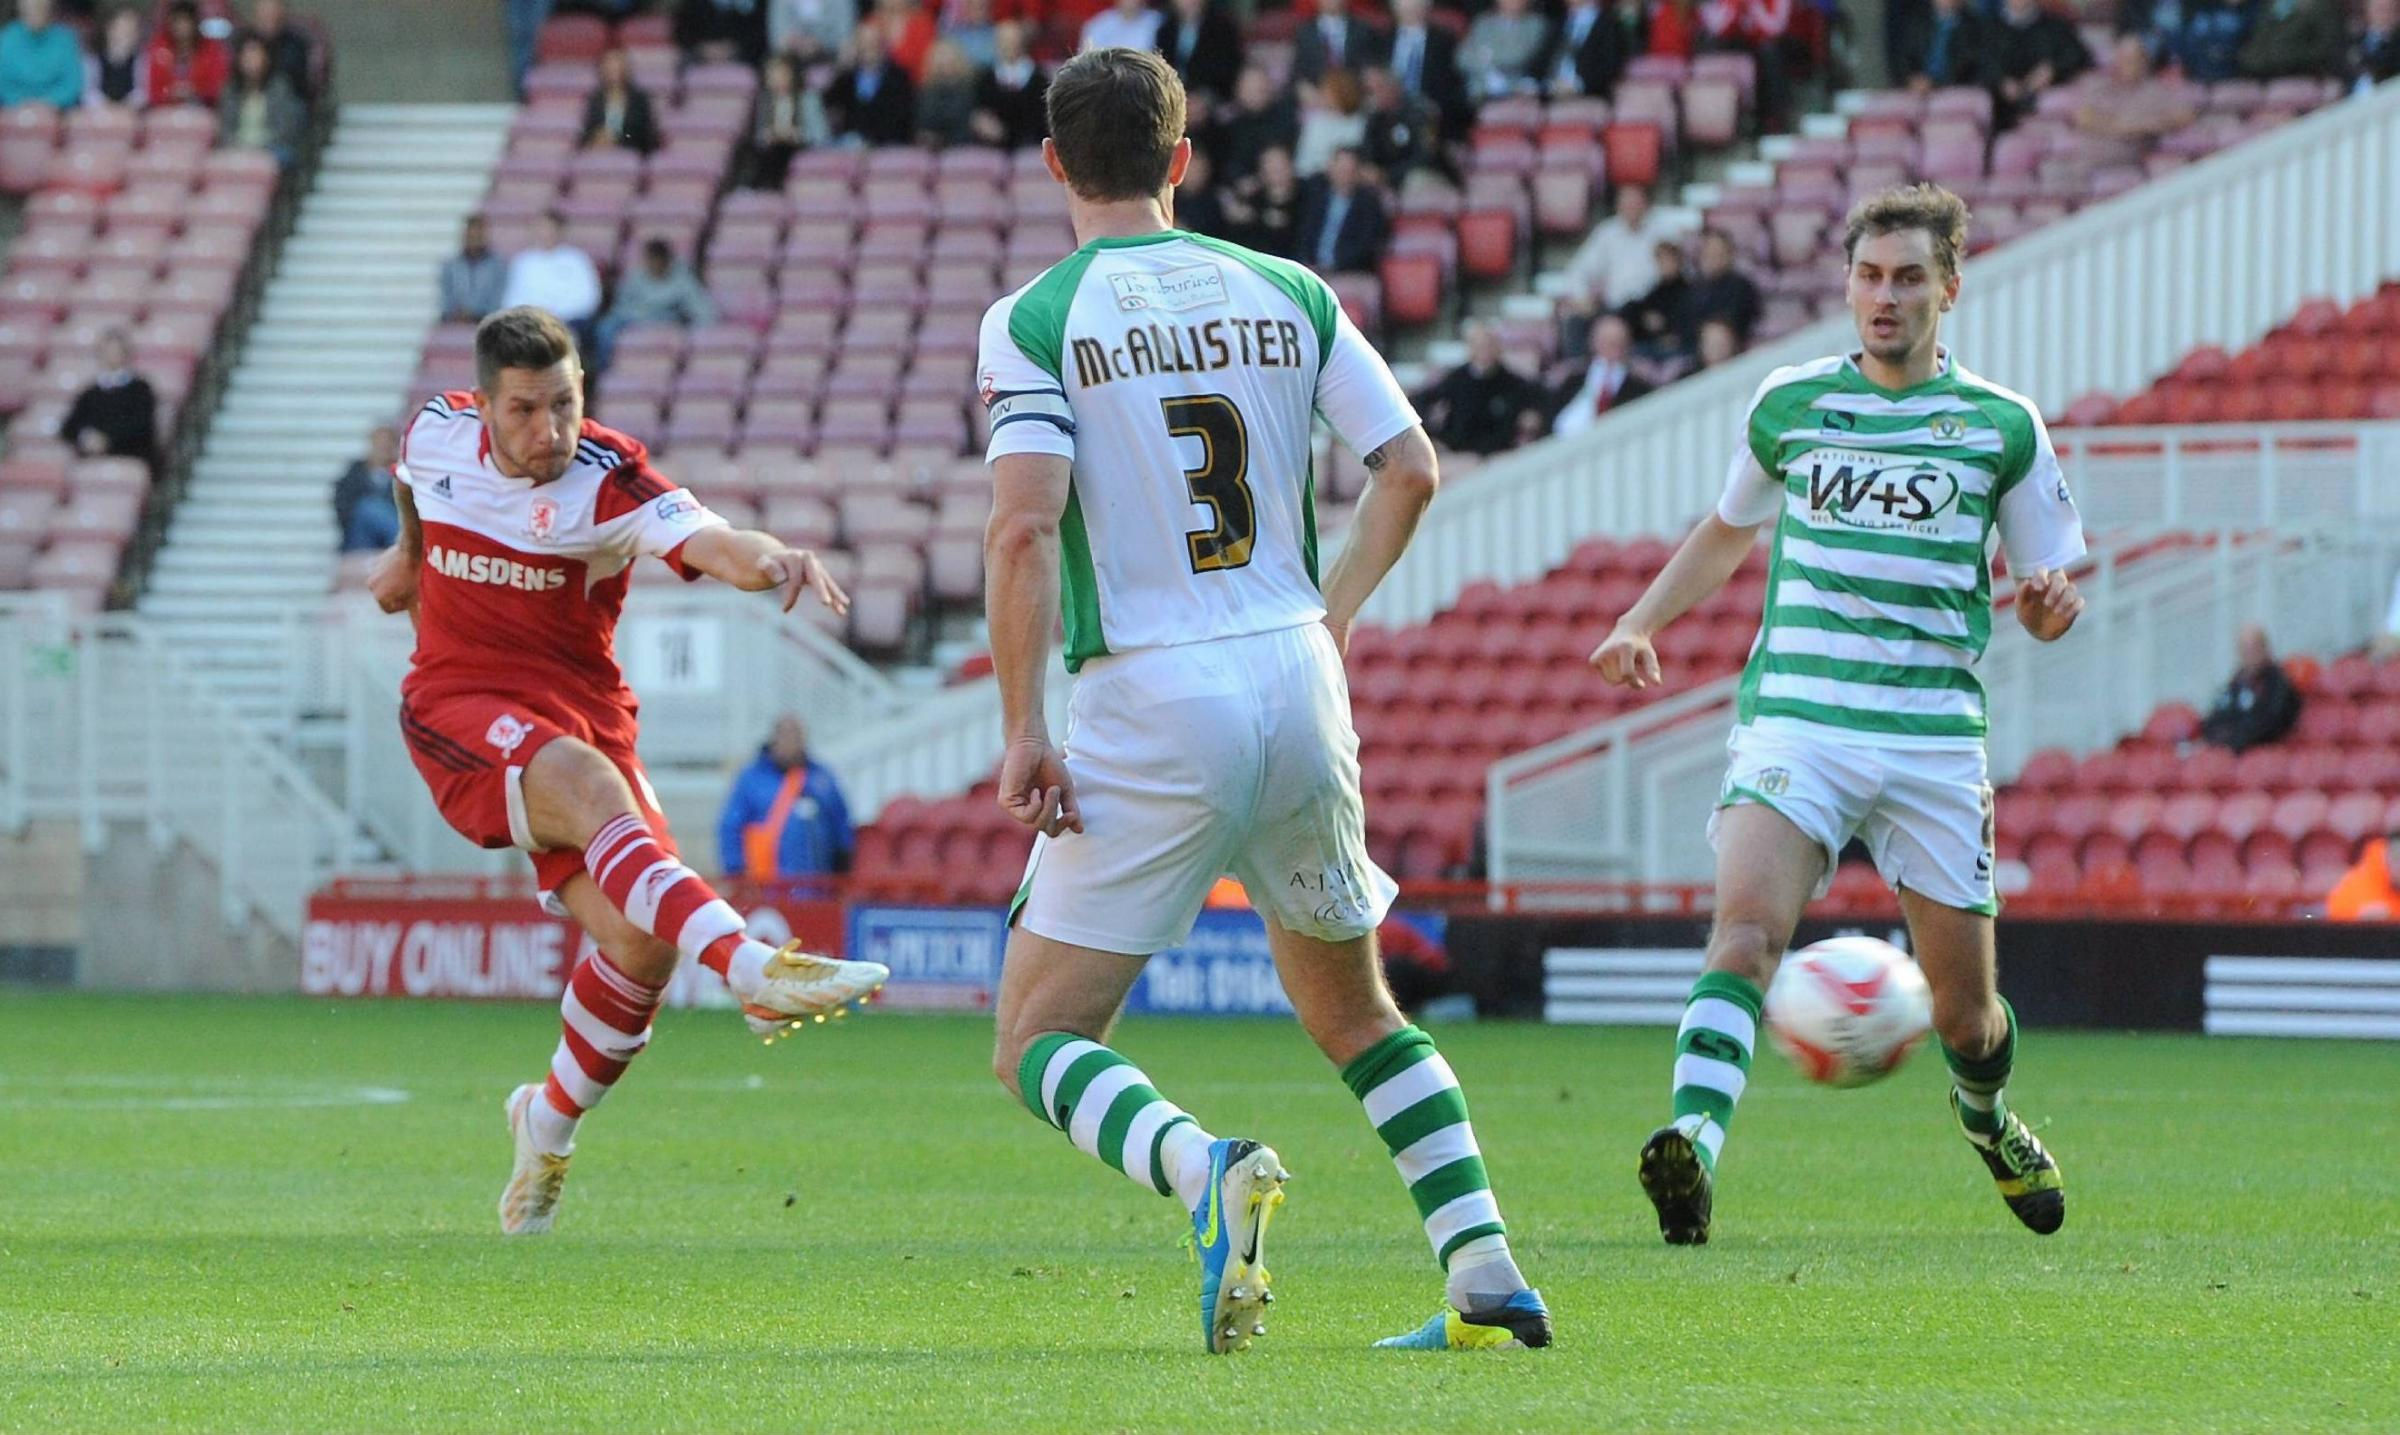 Goal drought does not add extra pressure, insists Middlesbrough's Butterfield